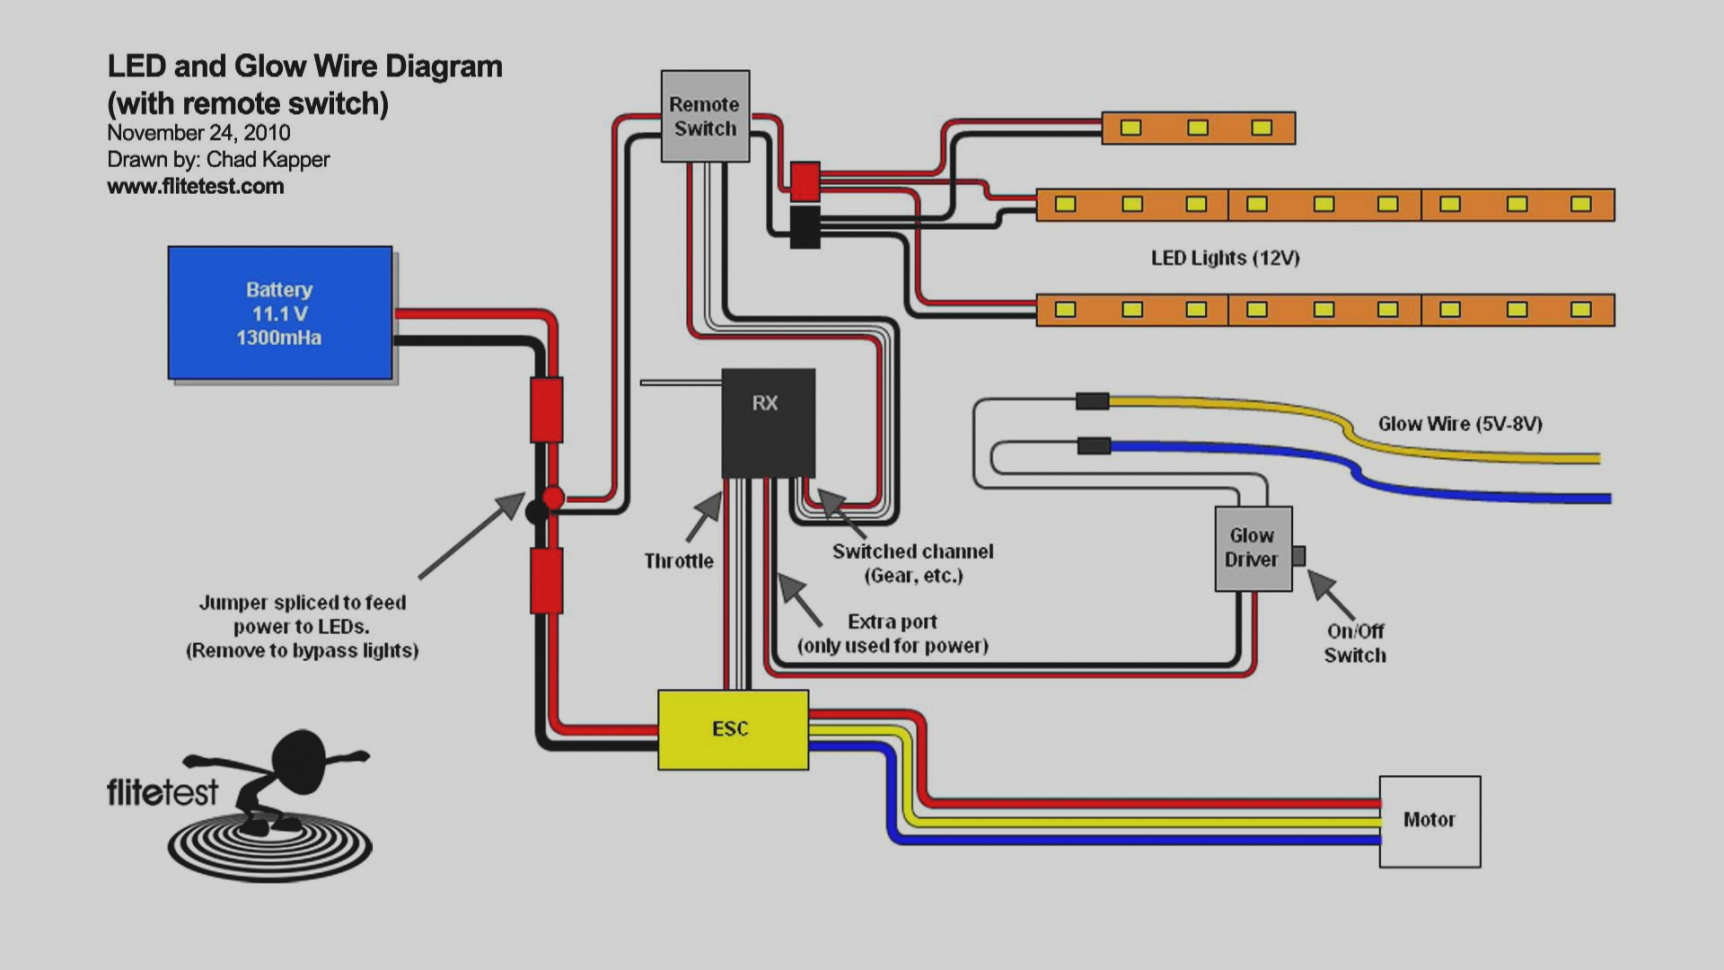 led light wiring diagram Download-Wonderful Led Strip Light Wiring Diagram Luxury Agnitum Me 19-s